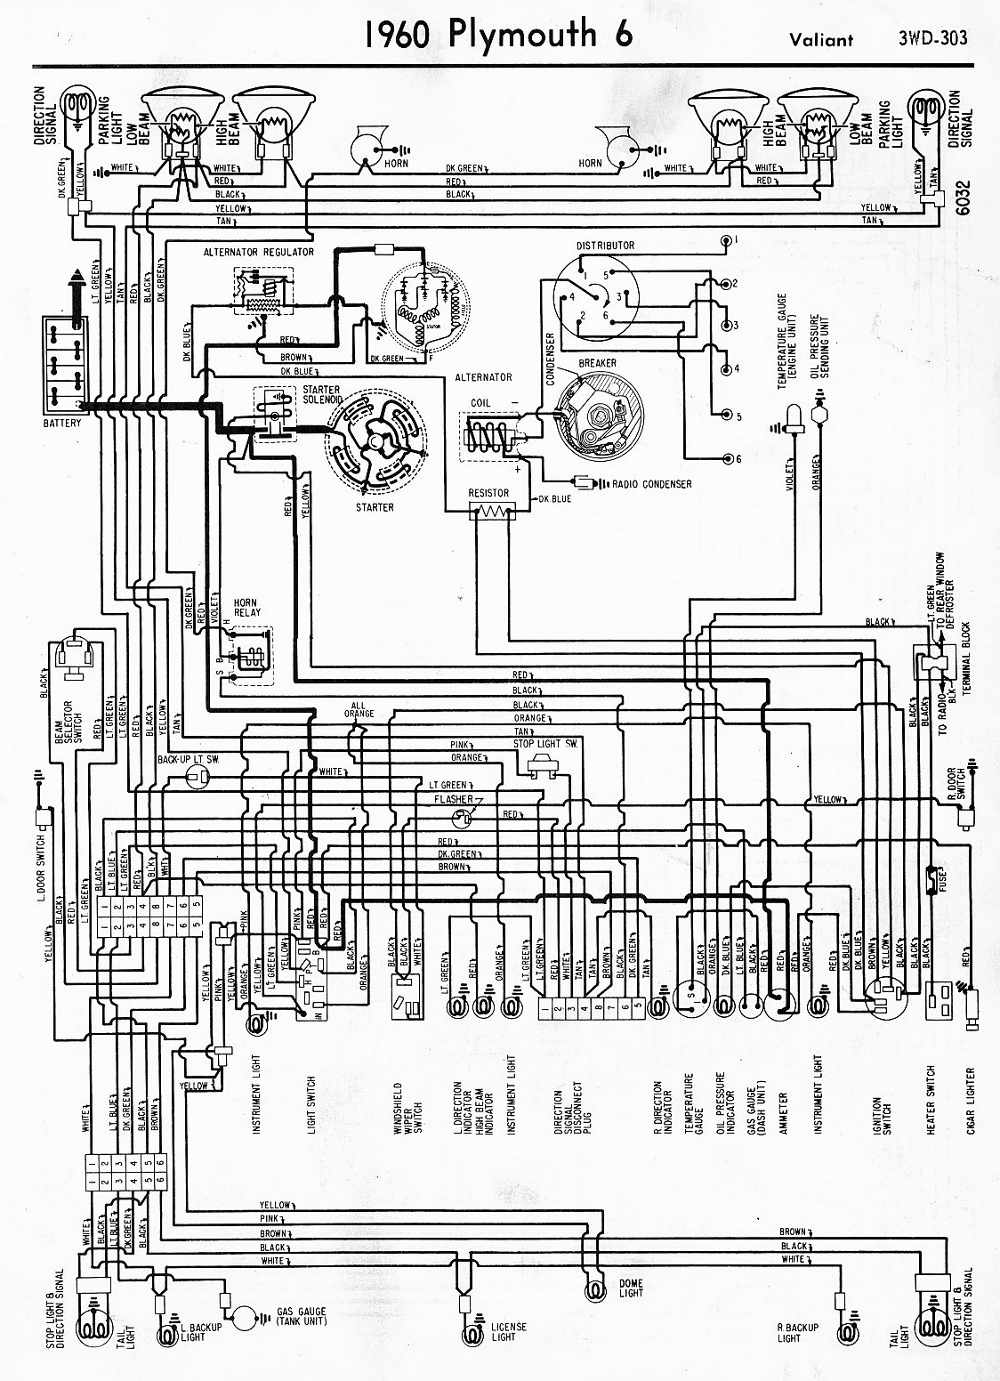 1975 Plymouth Duster Fuse Box Expert Schematics Diagram 74 1974 Valiant 1976 Wiring Diagrams